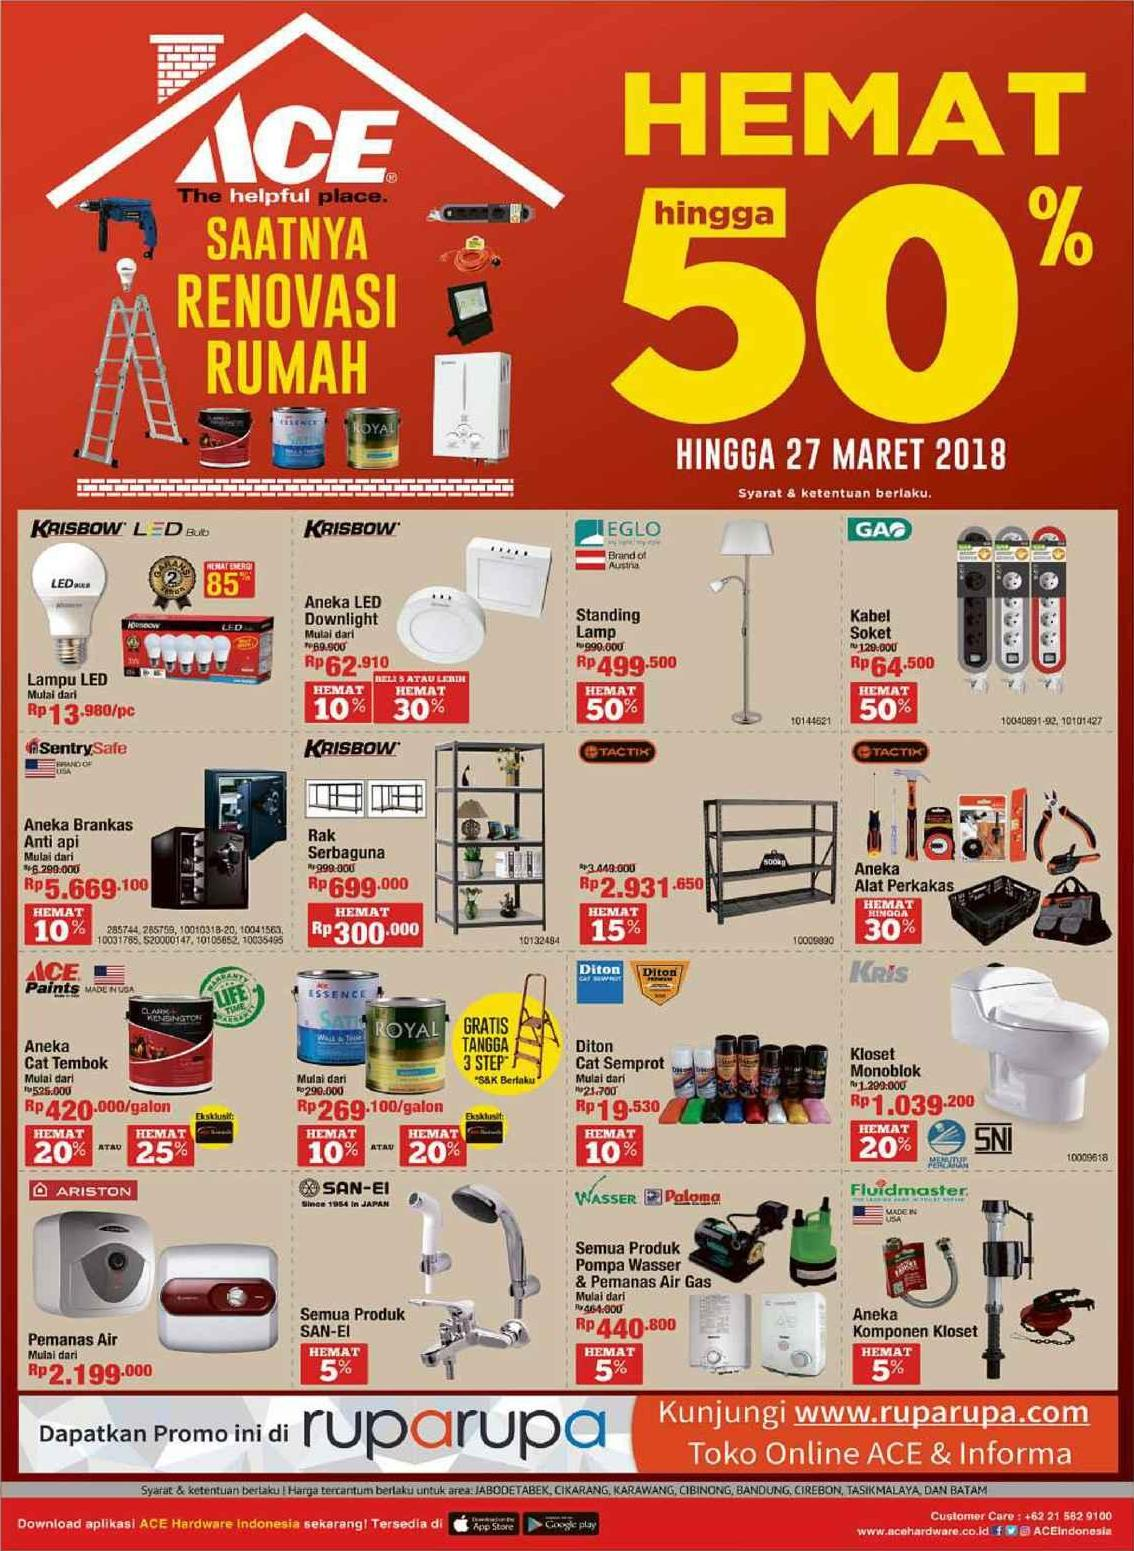 hight resolution of ace hardware coupon ace hardware coupons ace hardware